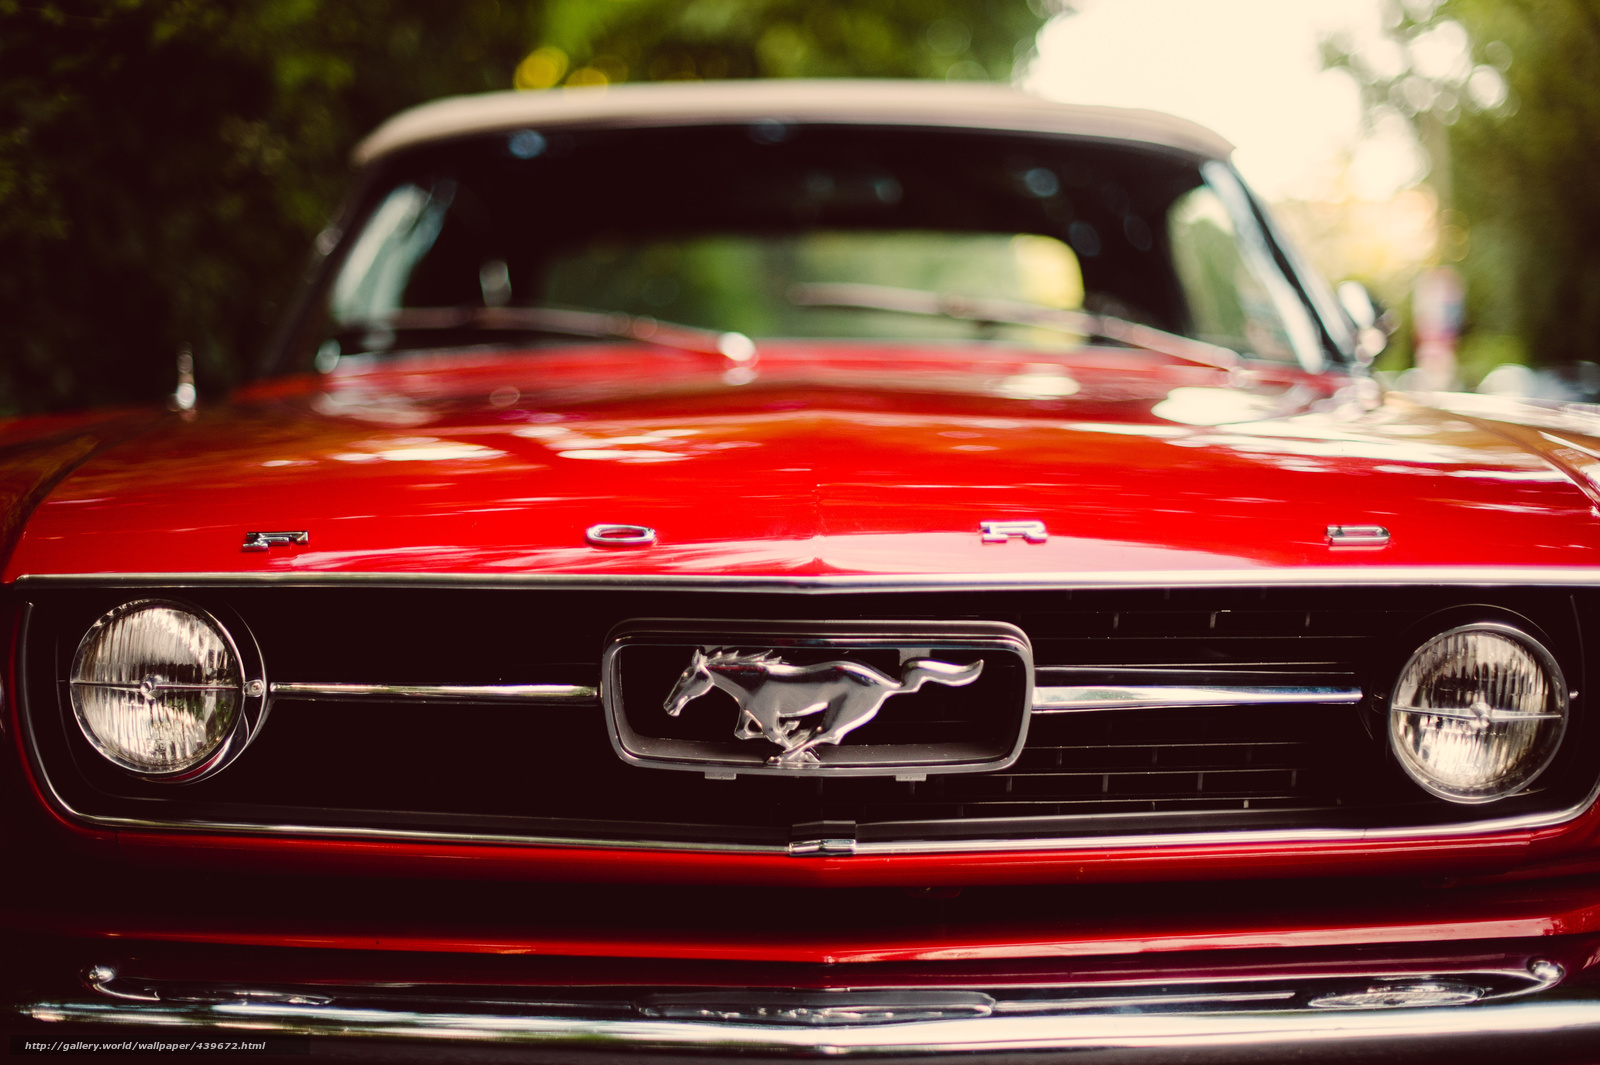 Download wallpaper ford mustang red classic free desktop wallpaper in the - Ford mustang vintage ...